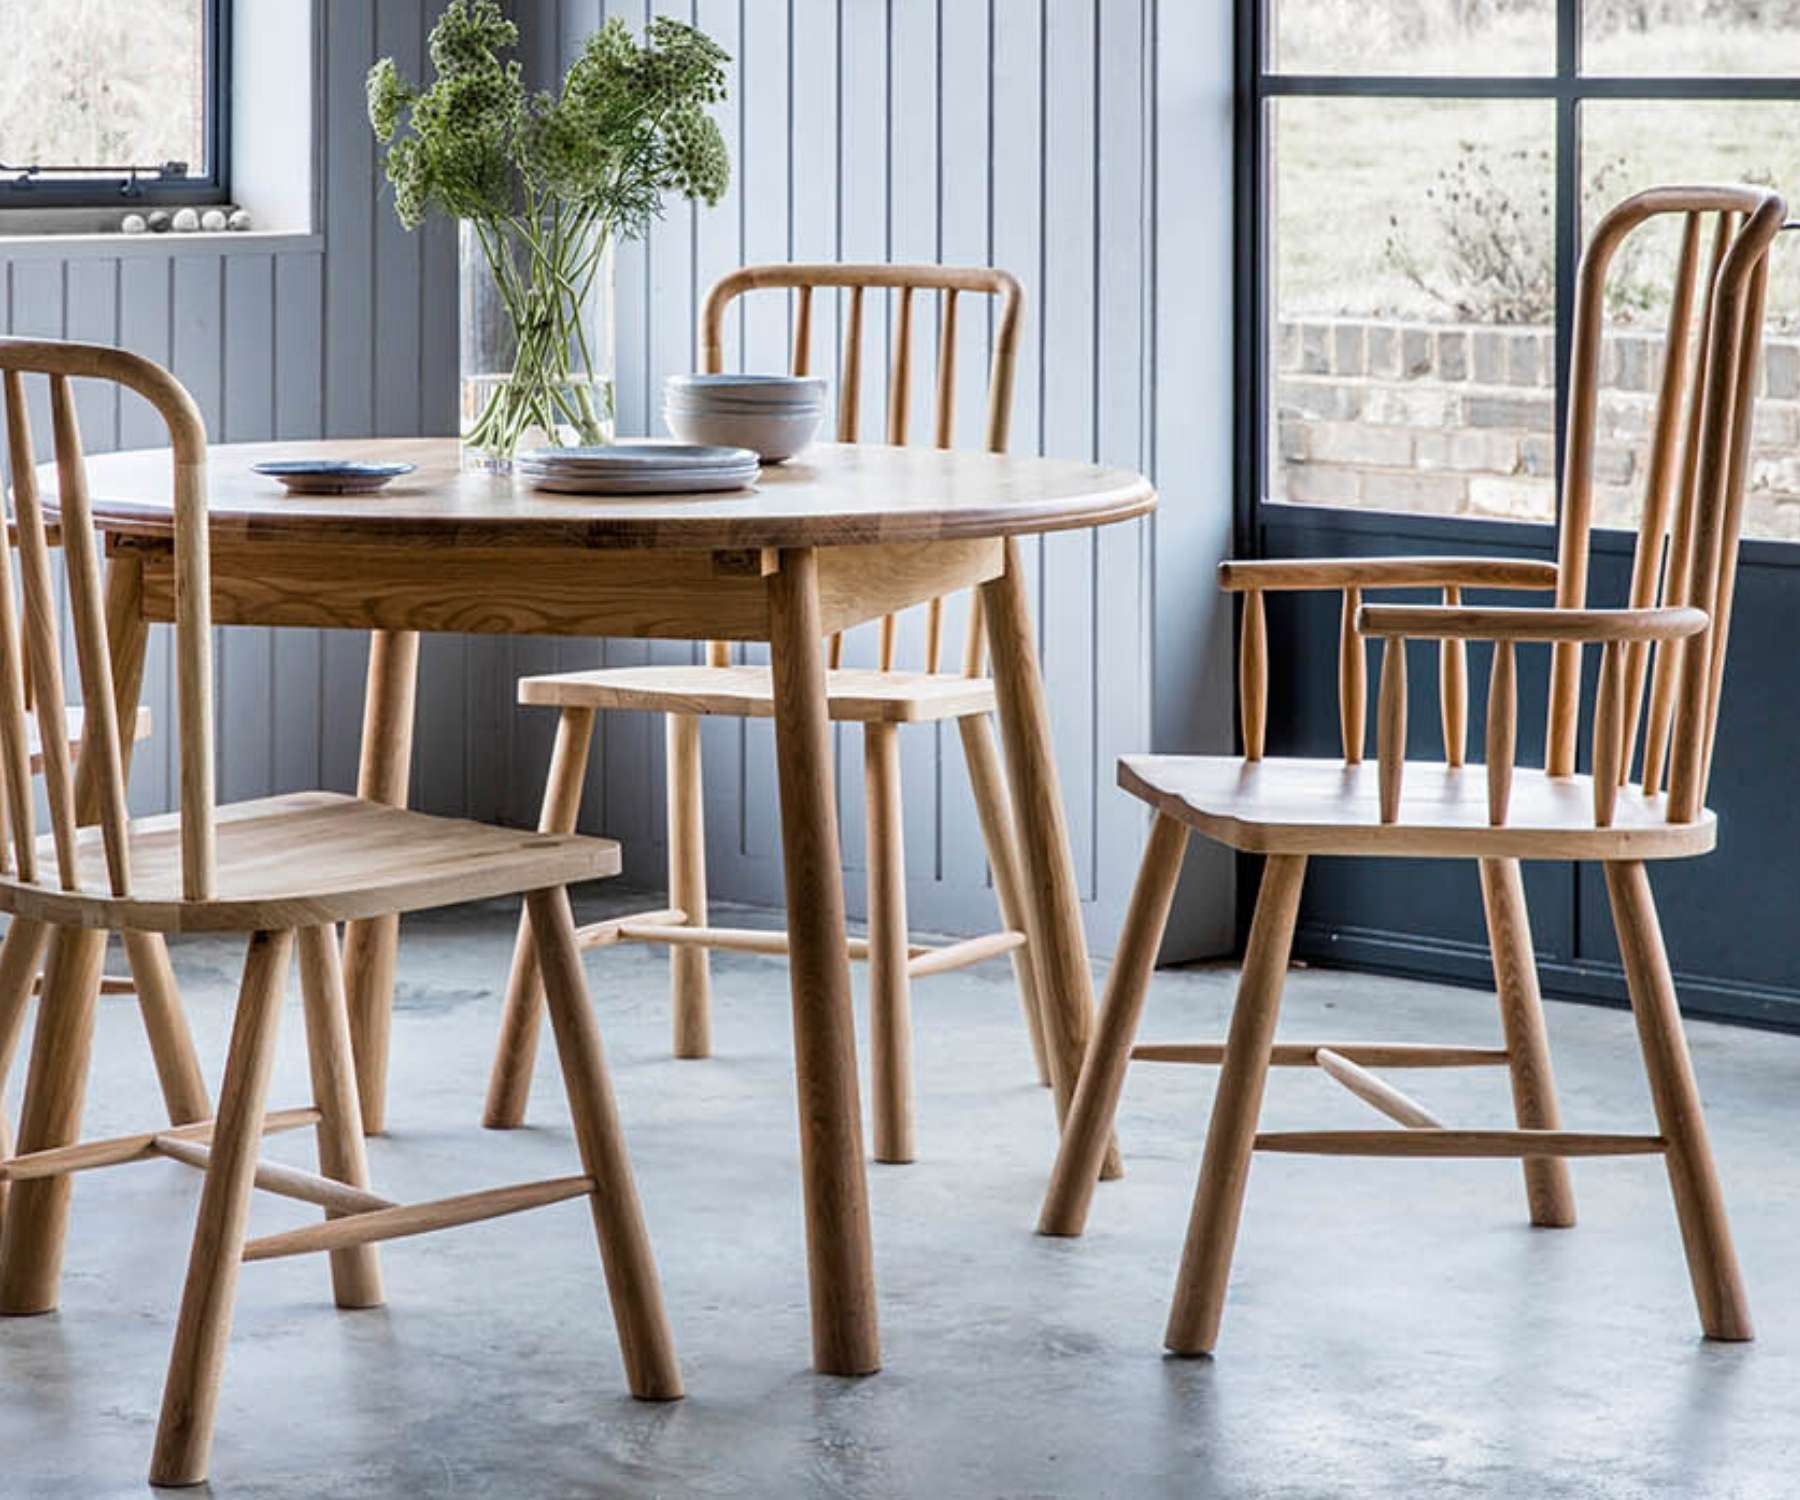 Scandi style round table and chairs